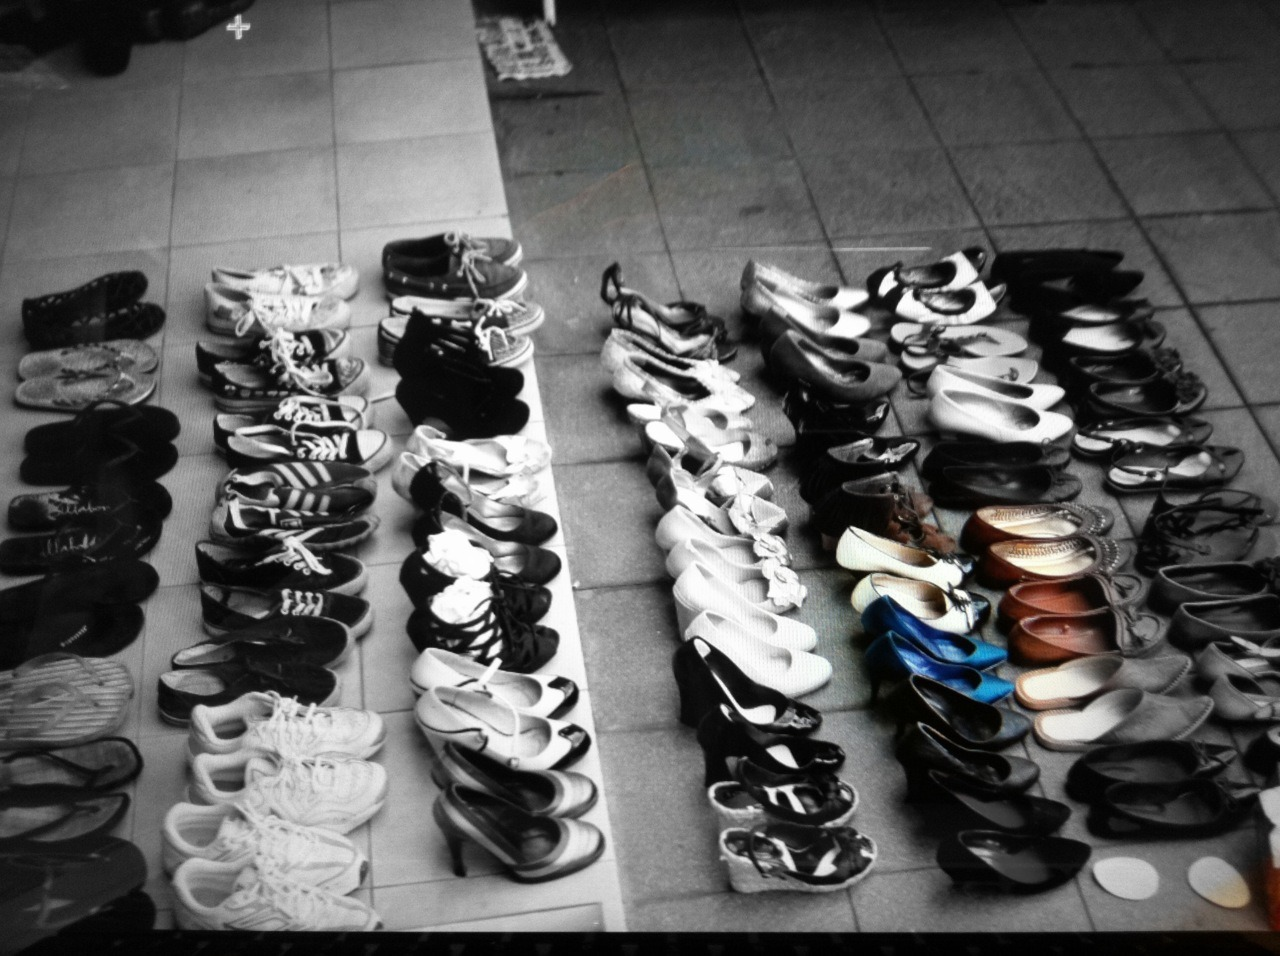 Counting Shoes haha